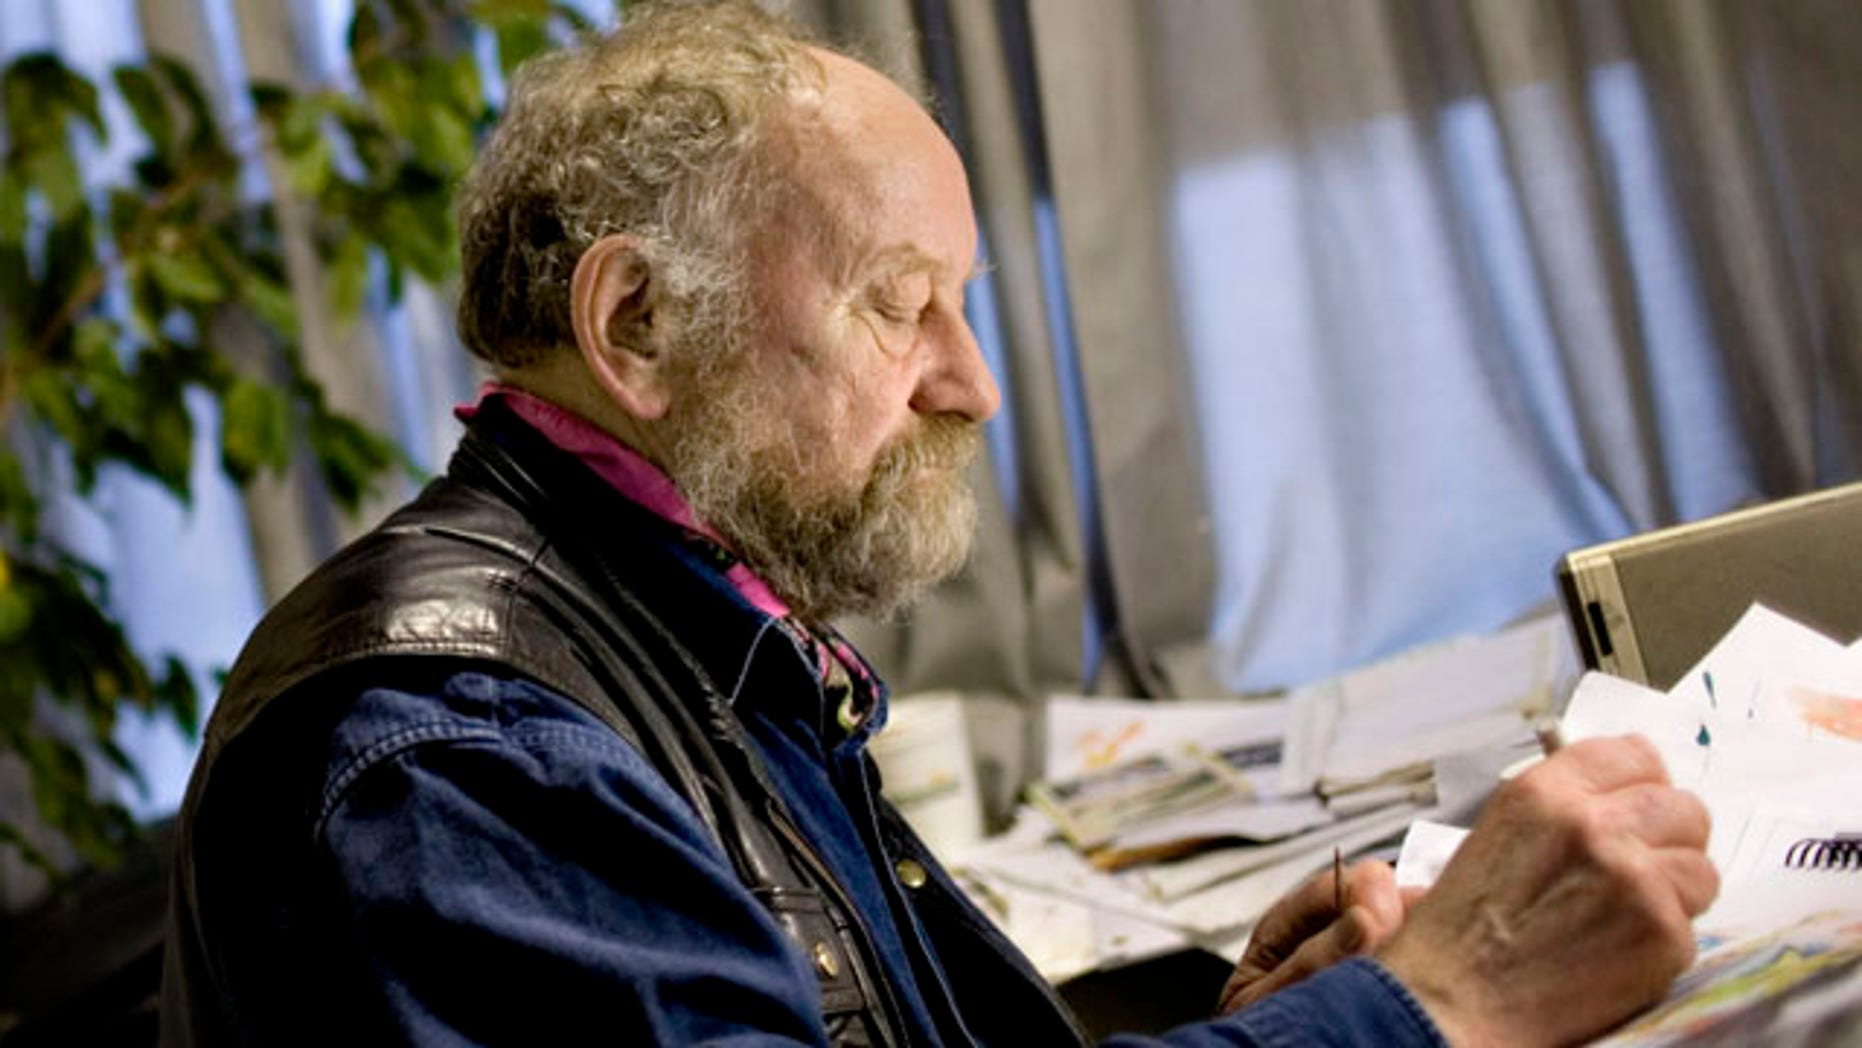 "Danish cartoonist Kurt Westergaard. the cartoonist who caricatured the Prophet Muhammad says he is quitting because he is getting old. Westergaard said ""one has to stop at some point."" He says he has been working since the age of 23, first as a teacher and then as an artist. He turns 75 on July 13. (AP)"